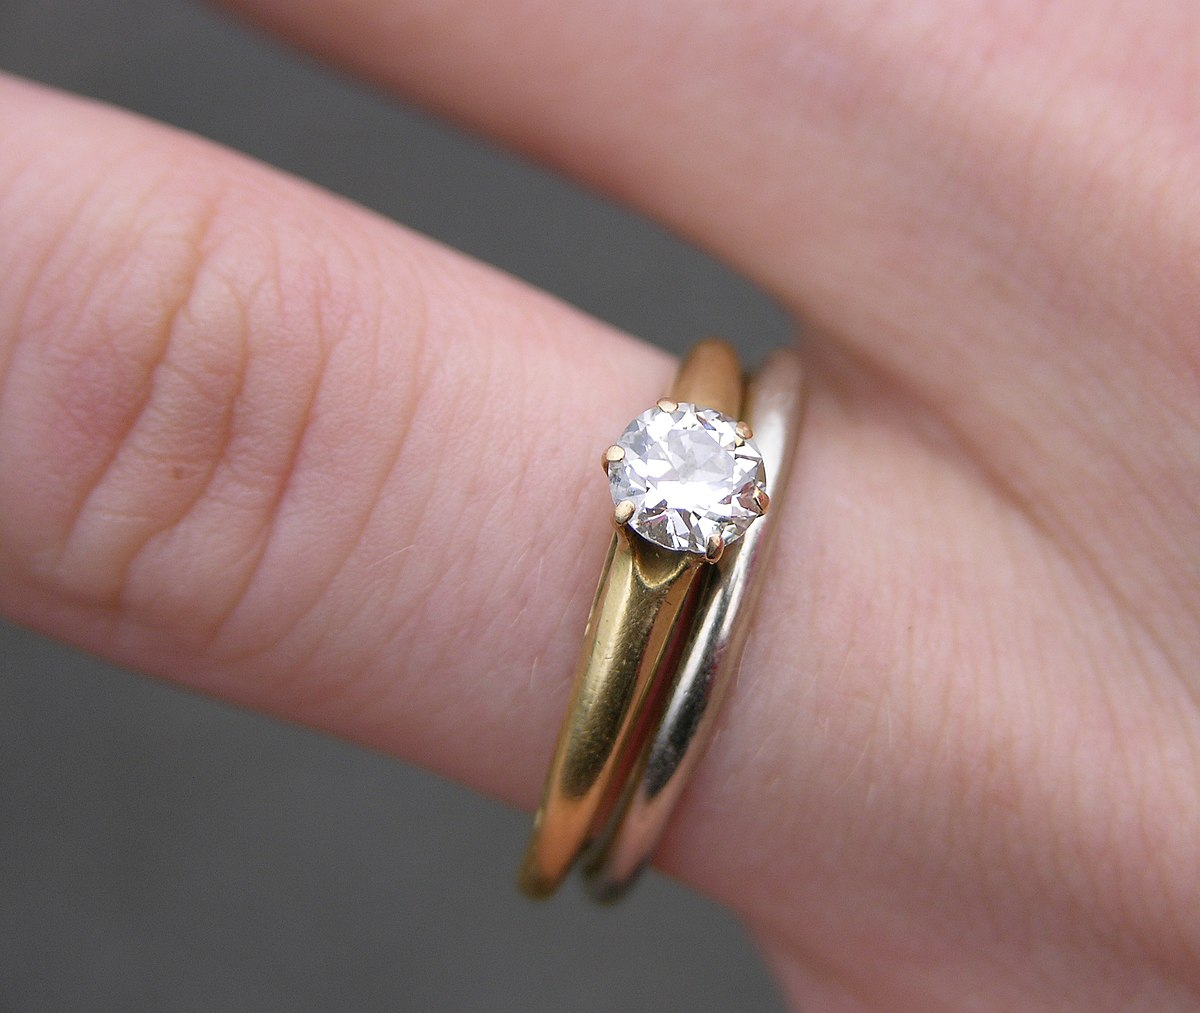 wedding collection blog stack rings here advice to engagement is for ringing jewellery bells and matching our index then